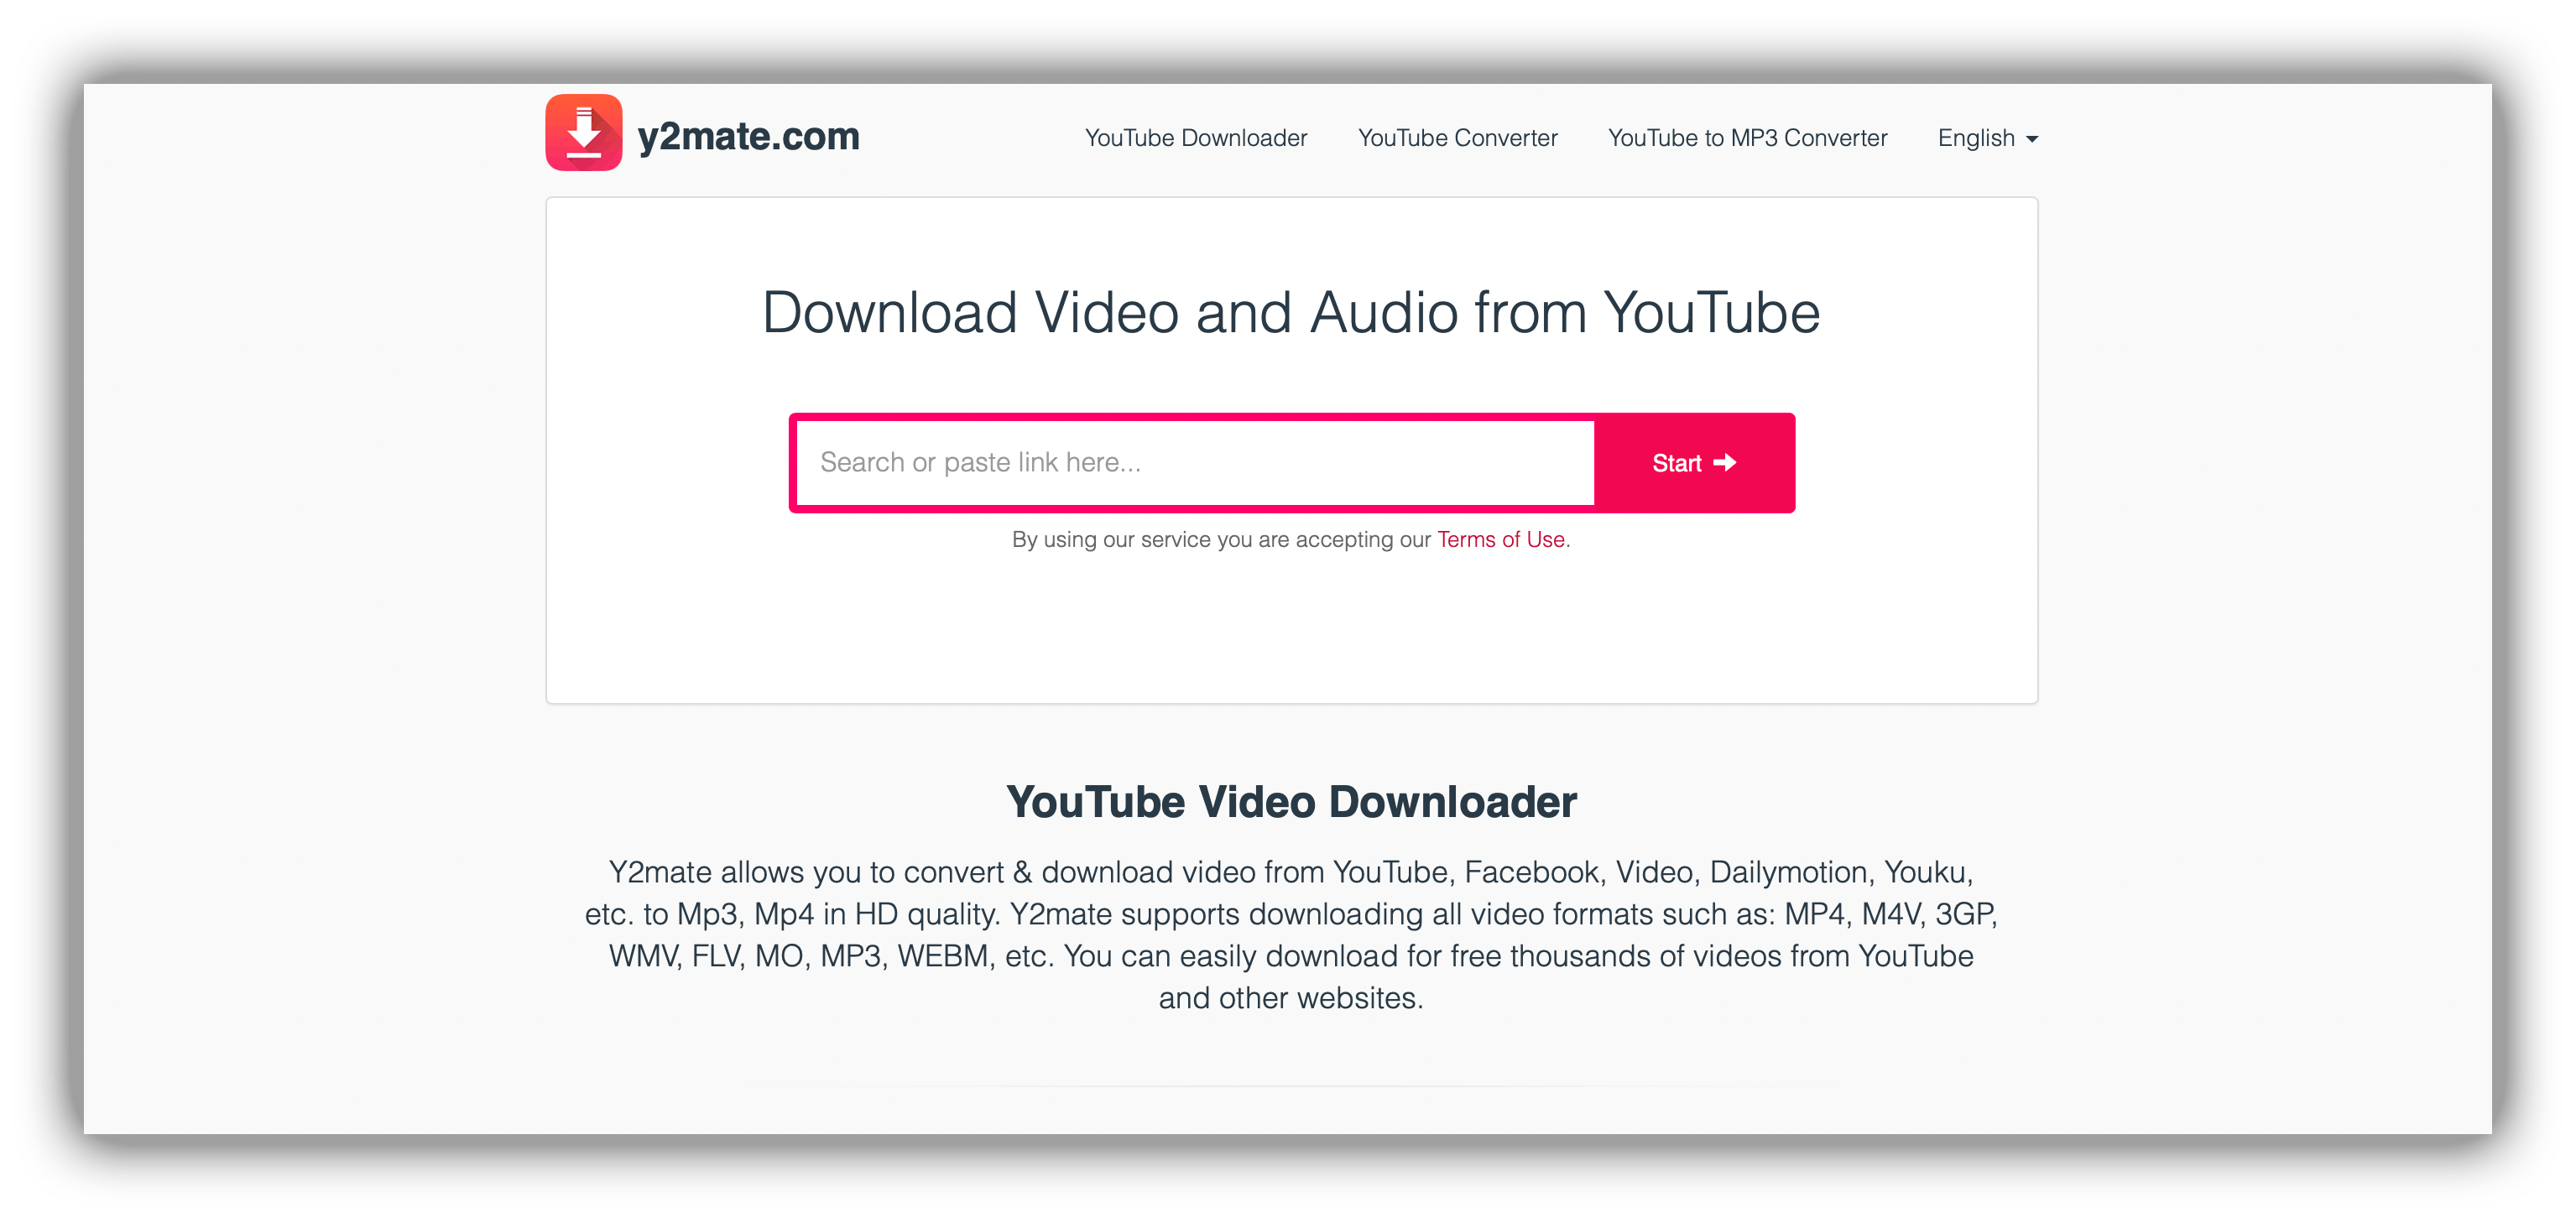 6. Youtube to MP3 Converter